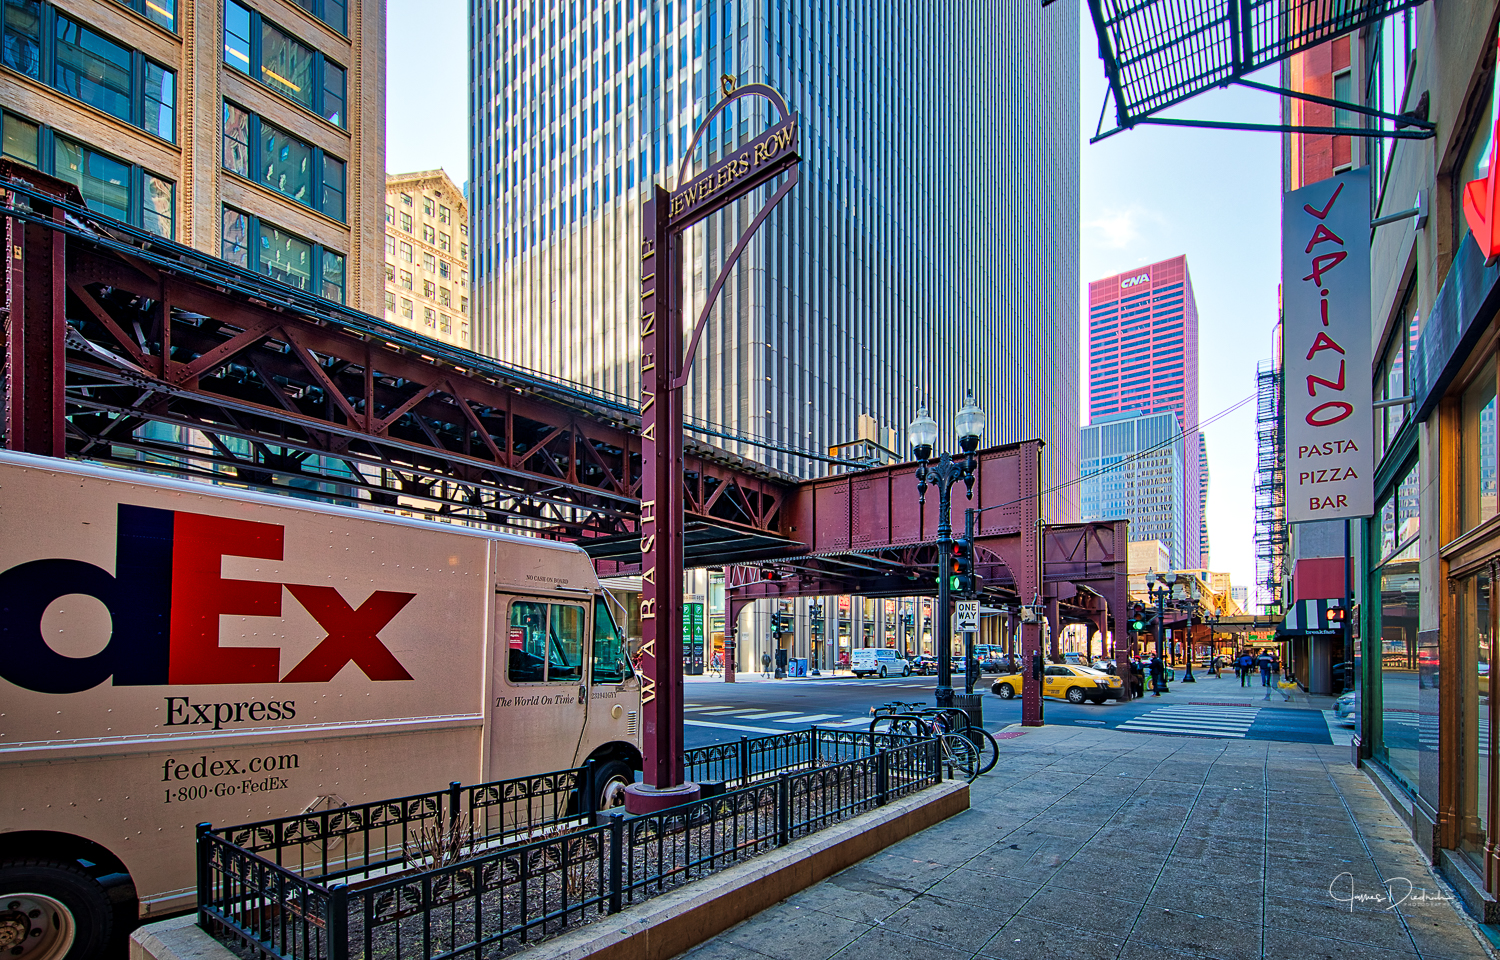 Wabash Avenue with the El in the background